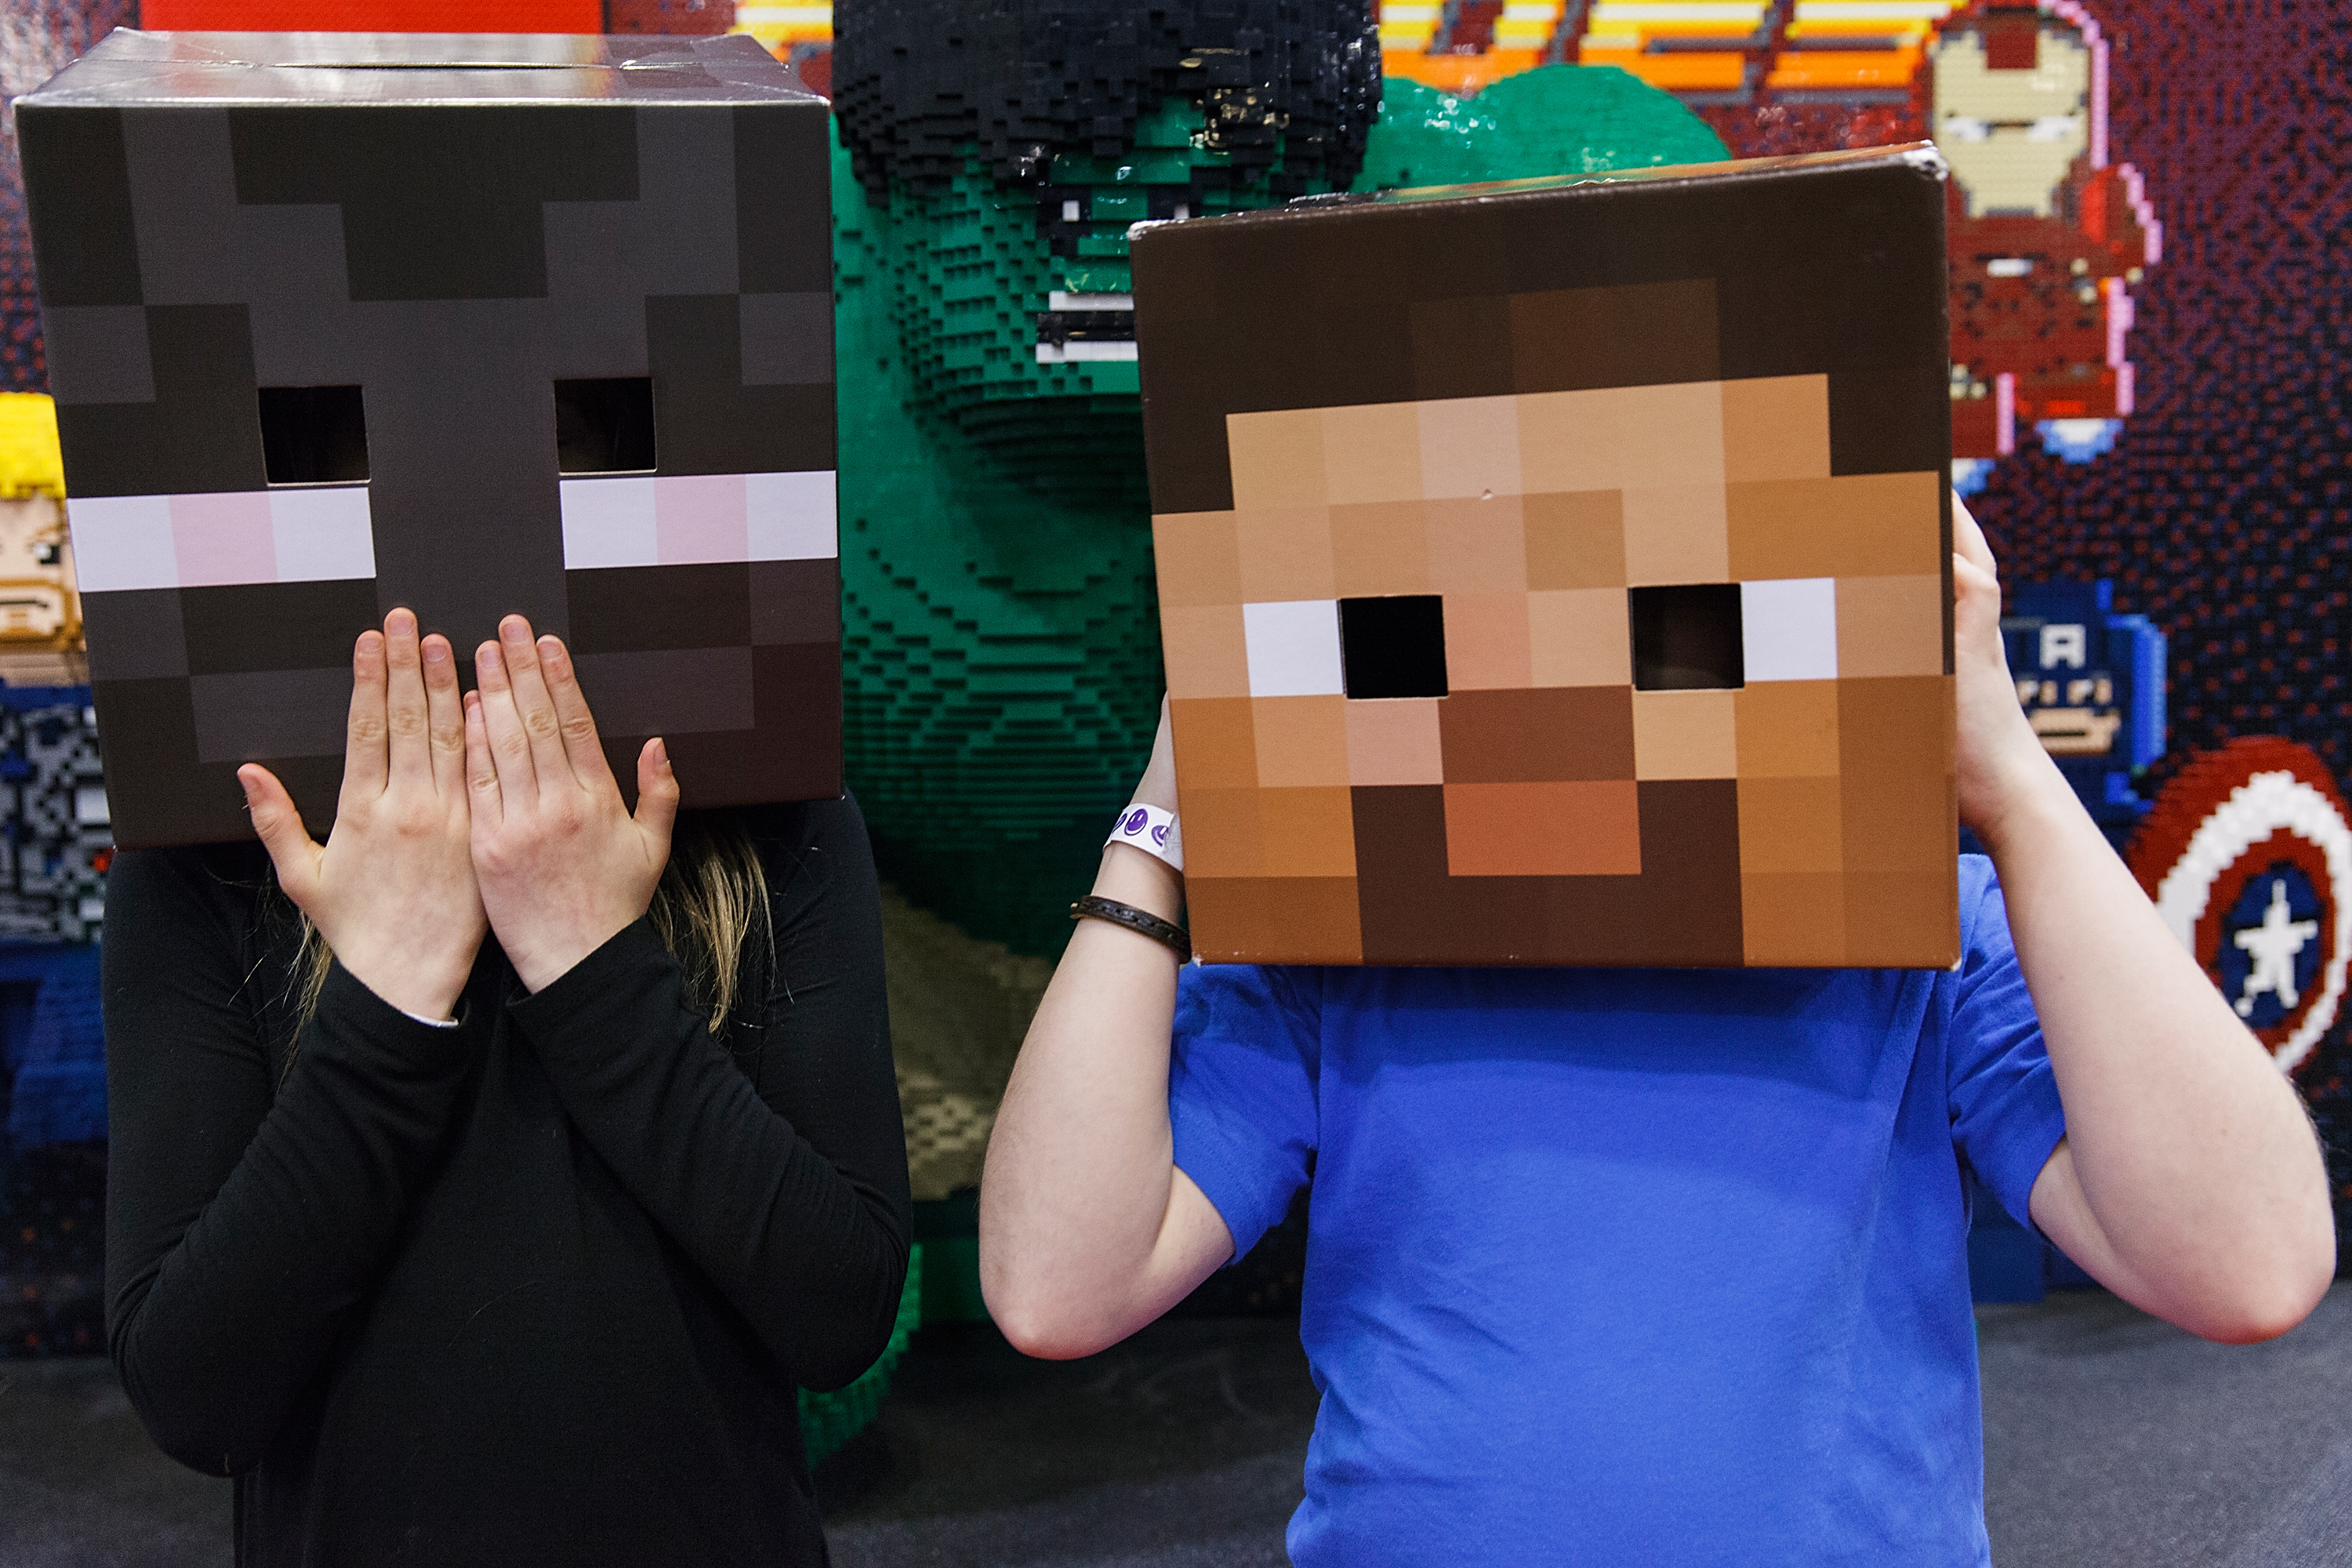 Minecraft fans during Fan Expo Vancouver 2015 at the Vancouver Convention Centre on April 3, 2015 in Vancouver, Canada.